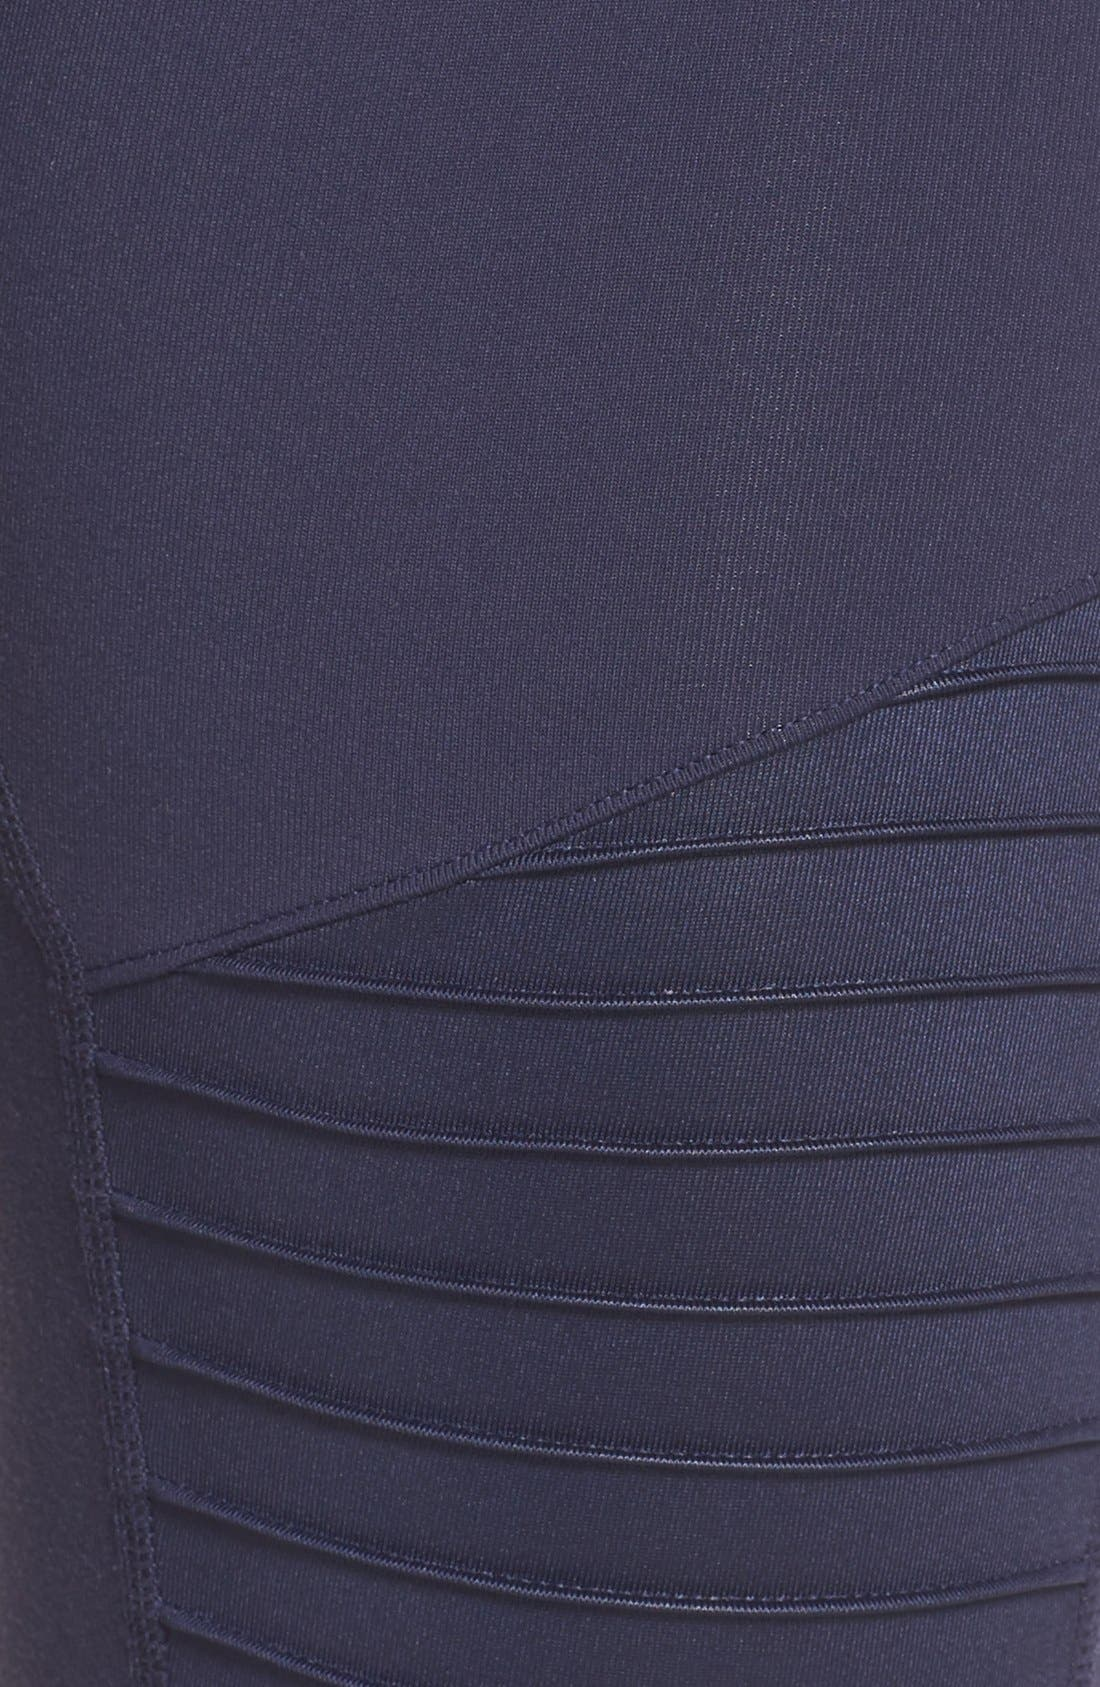 High Waist Moto Leggings,                             Alternate thumbnail 6, color,                             Rich Navy/ Rich Navy Glossy